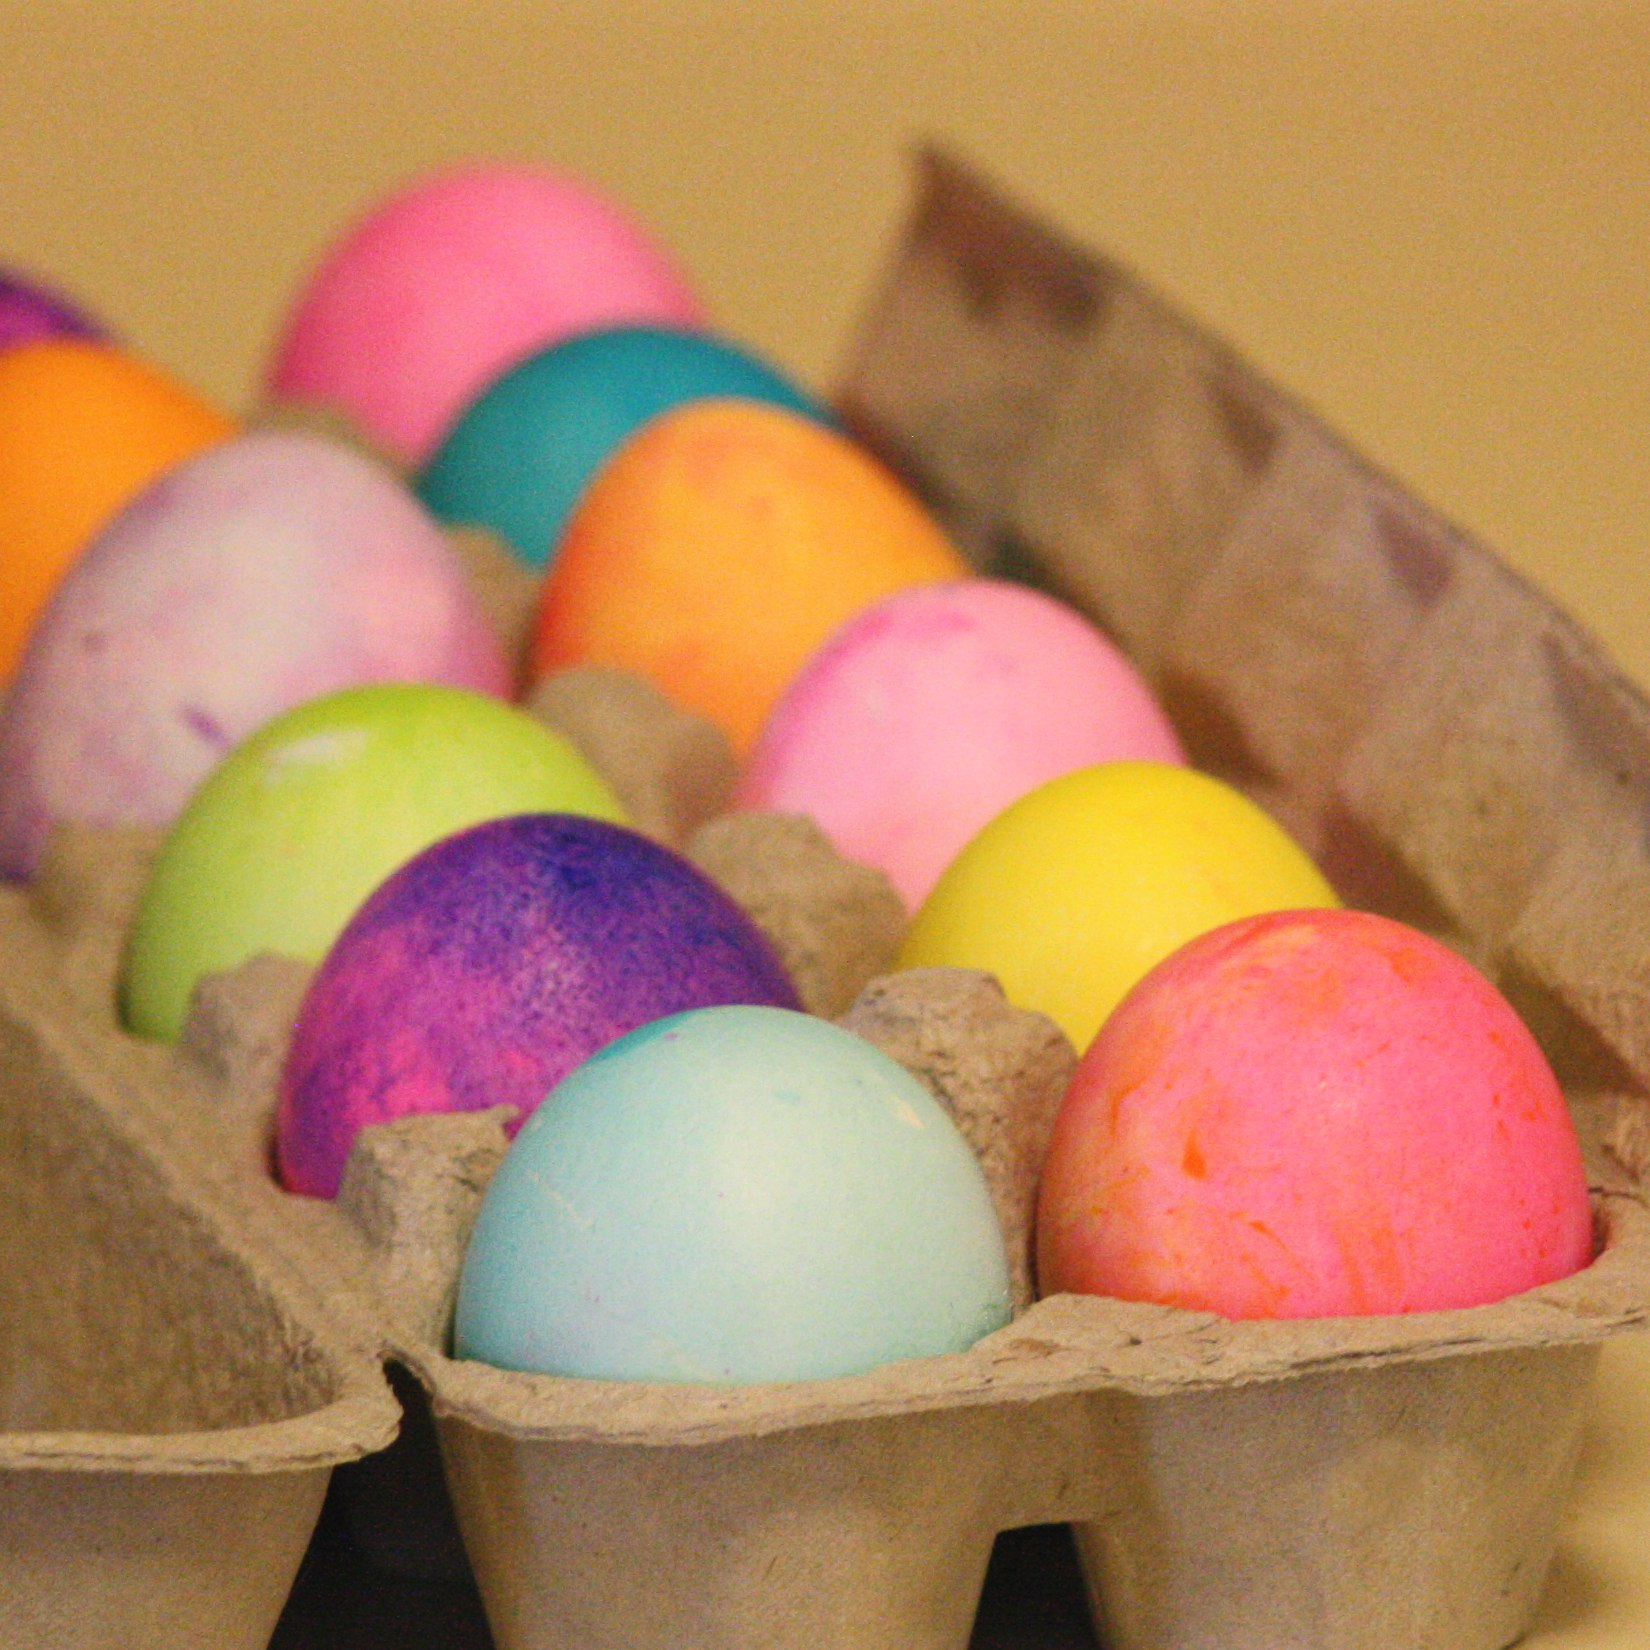 carton full of easter eggs picture free photograph photos